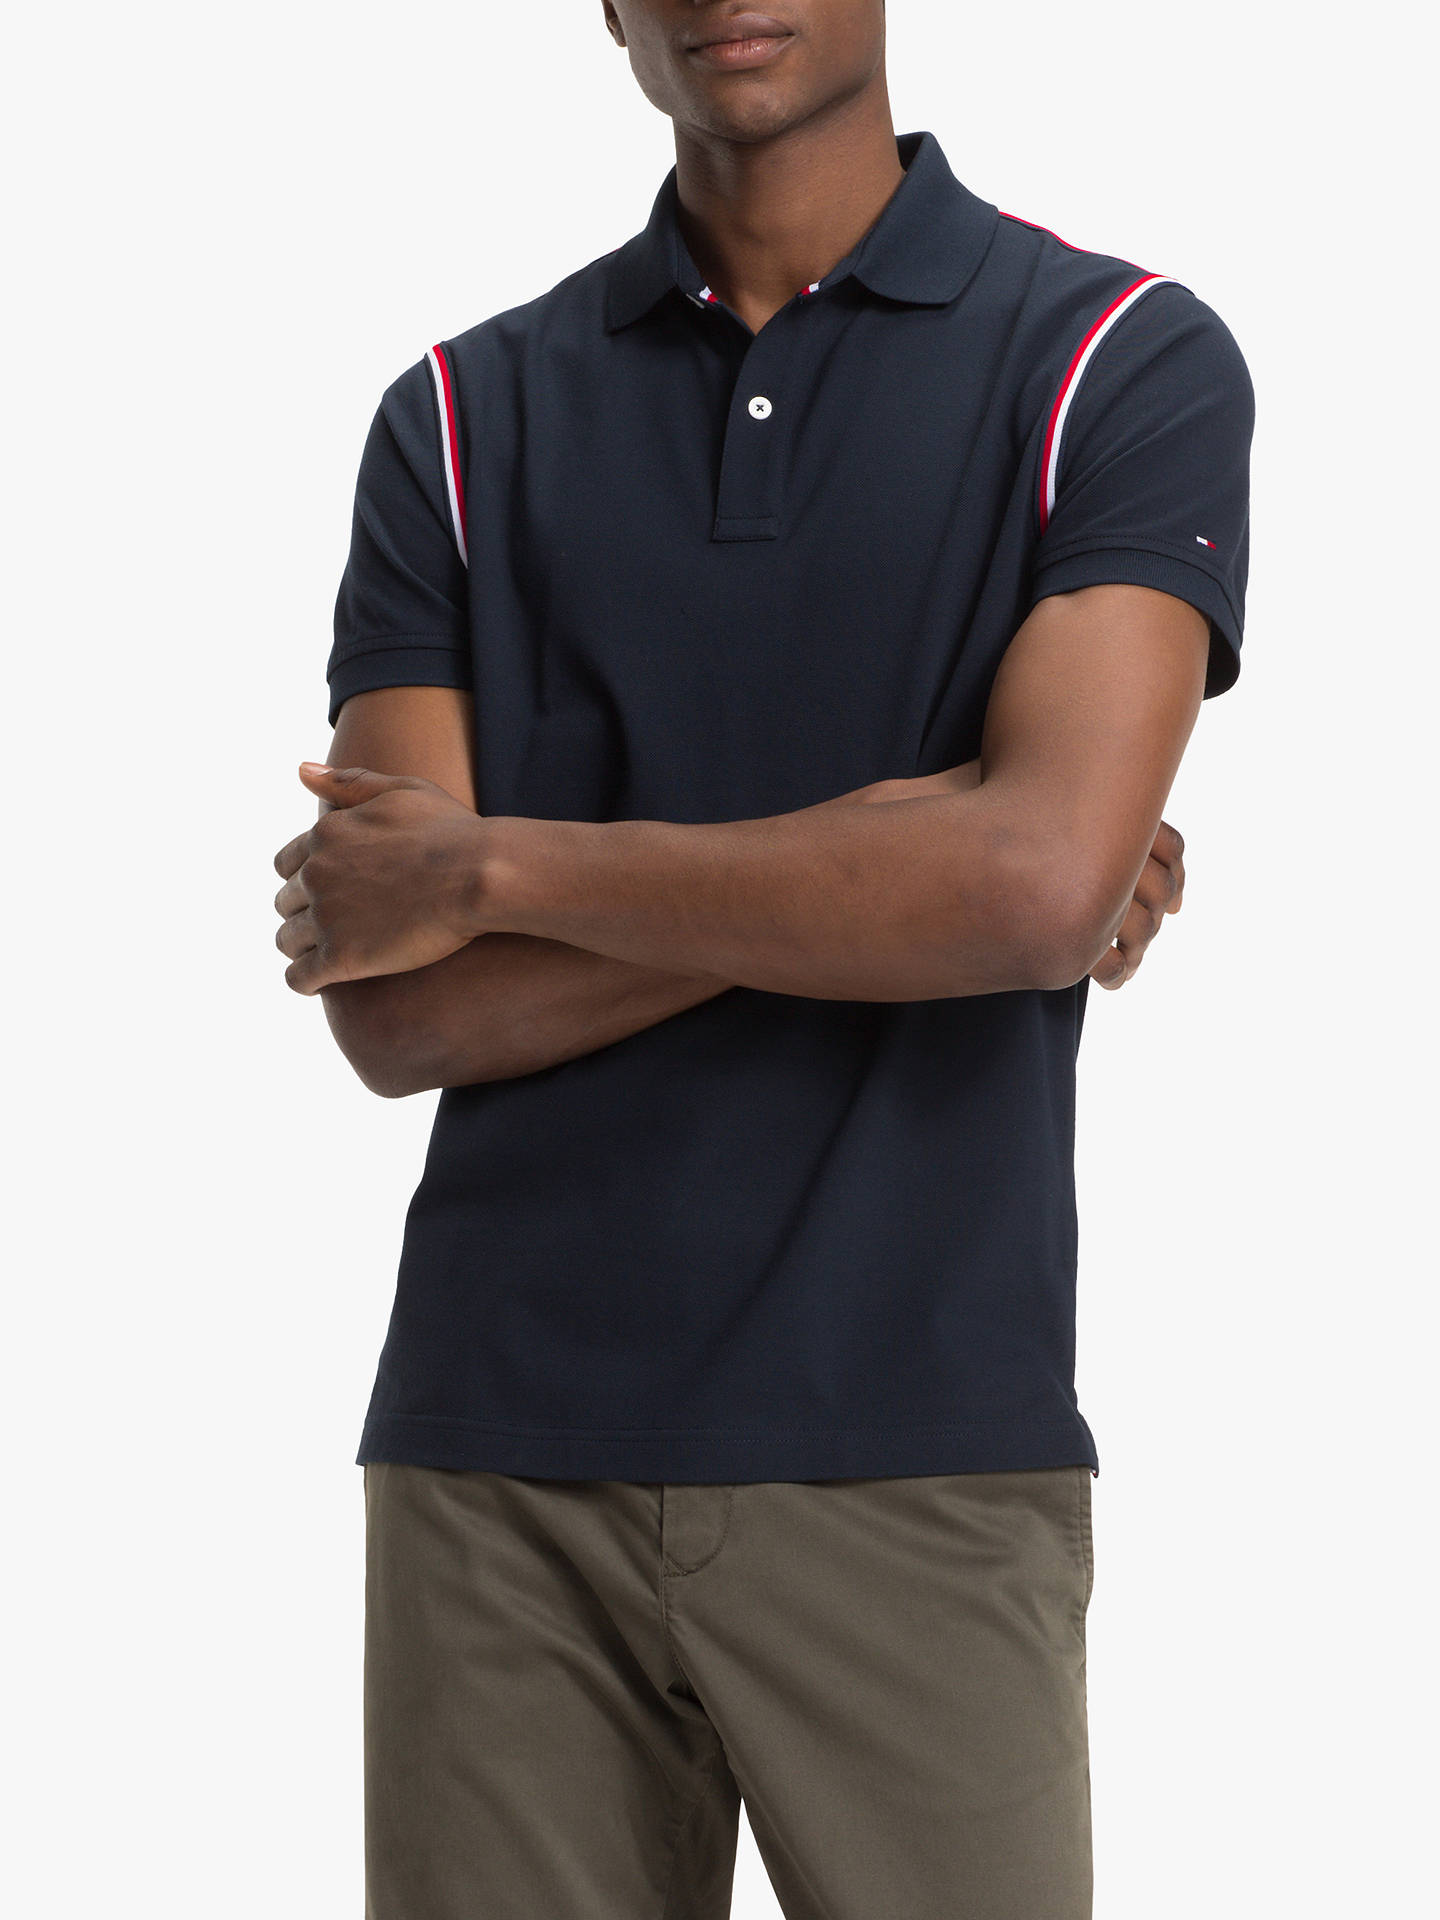 ac99748febb Tommy Hilfiger Tape Slim Fit Polo Shirt, Sky Captain at John Lewis ...